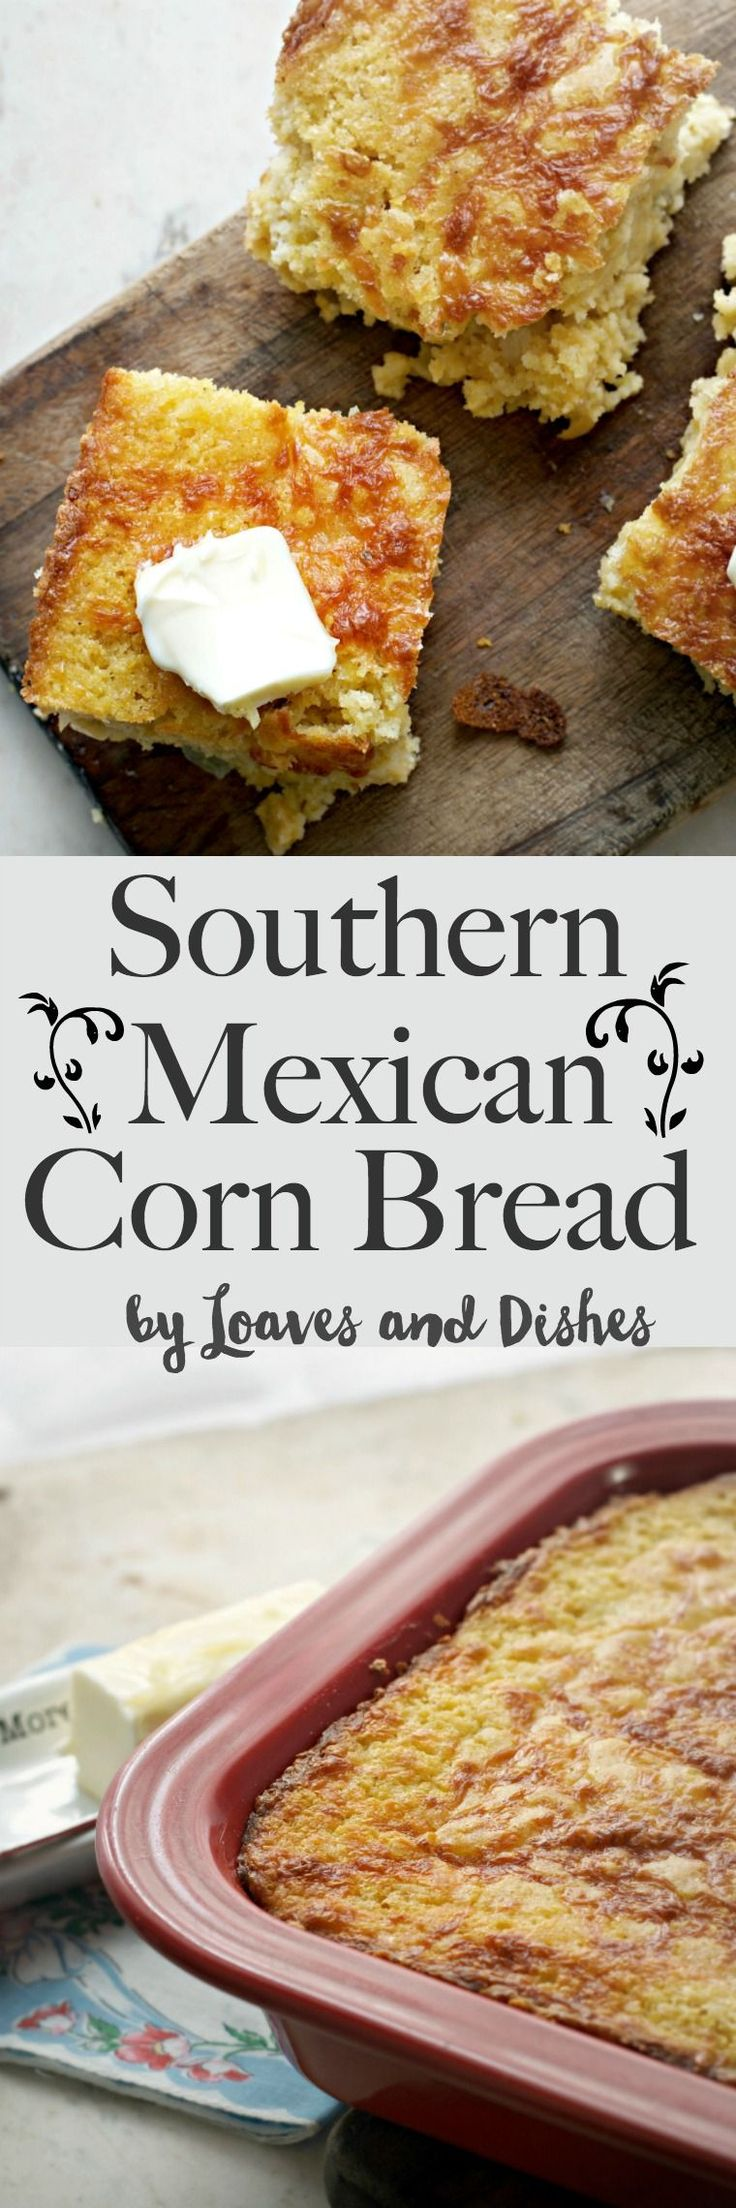 This mexican cornbread is so southern that it screams Ya'll! Ready in a Jiffy. Easy. homemade. Like the Pioneer woman makes, only better.